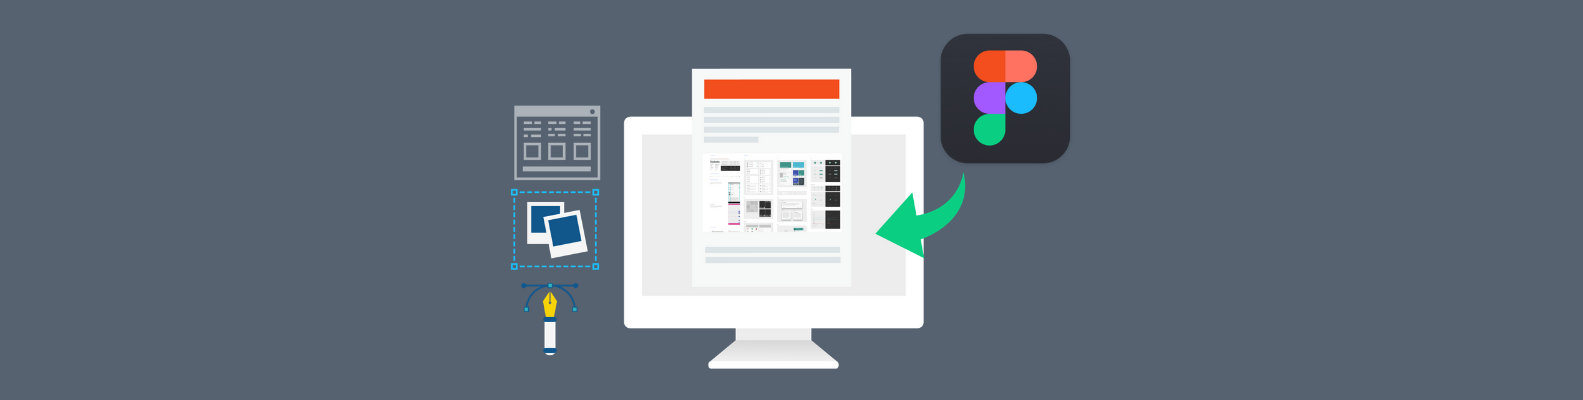 How to Embed Figma Designs Inside Your Documents - Bit Blog